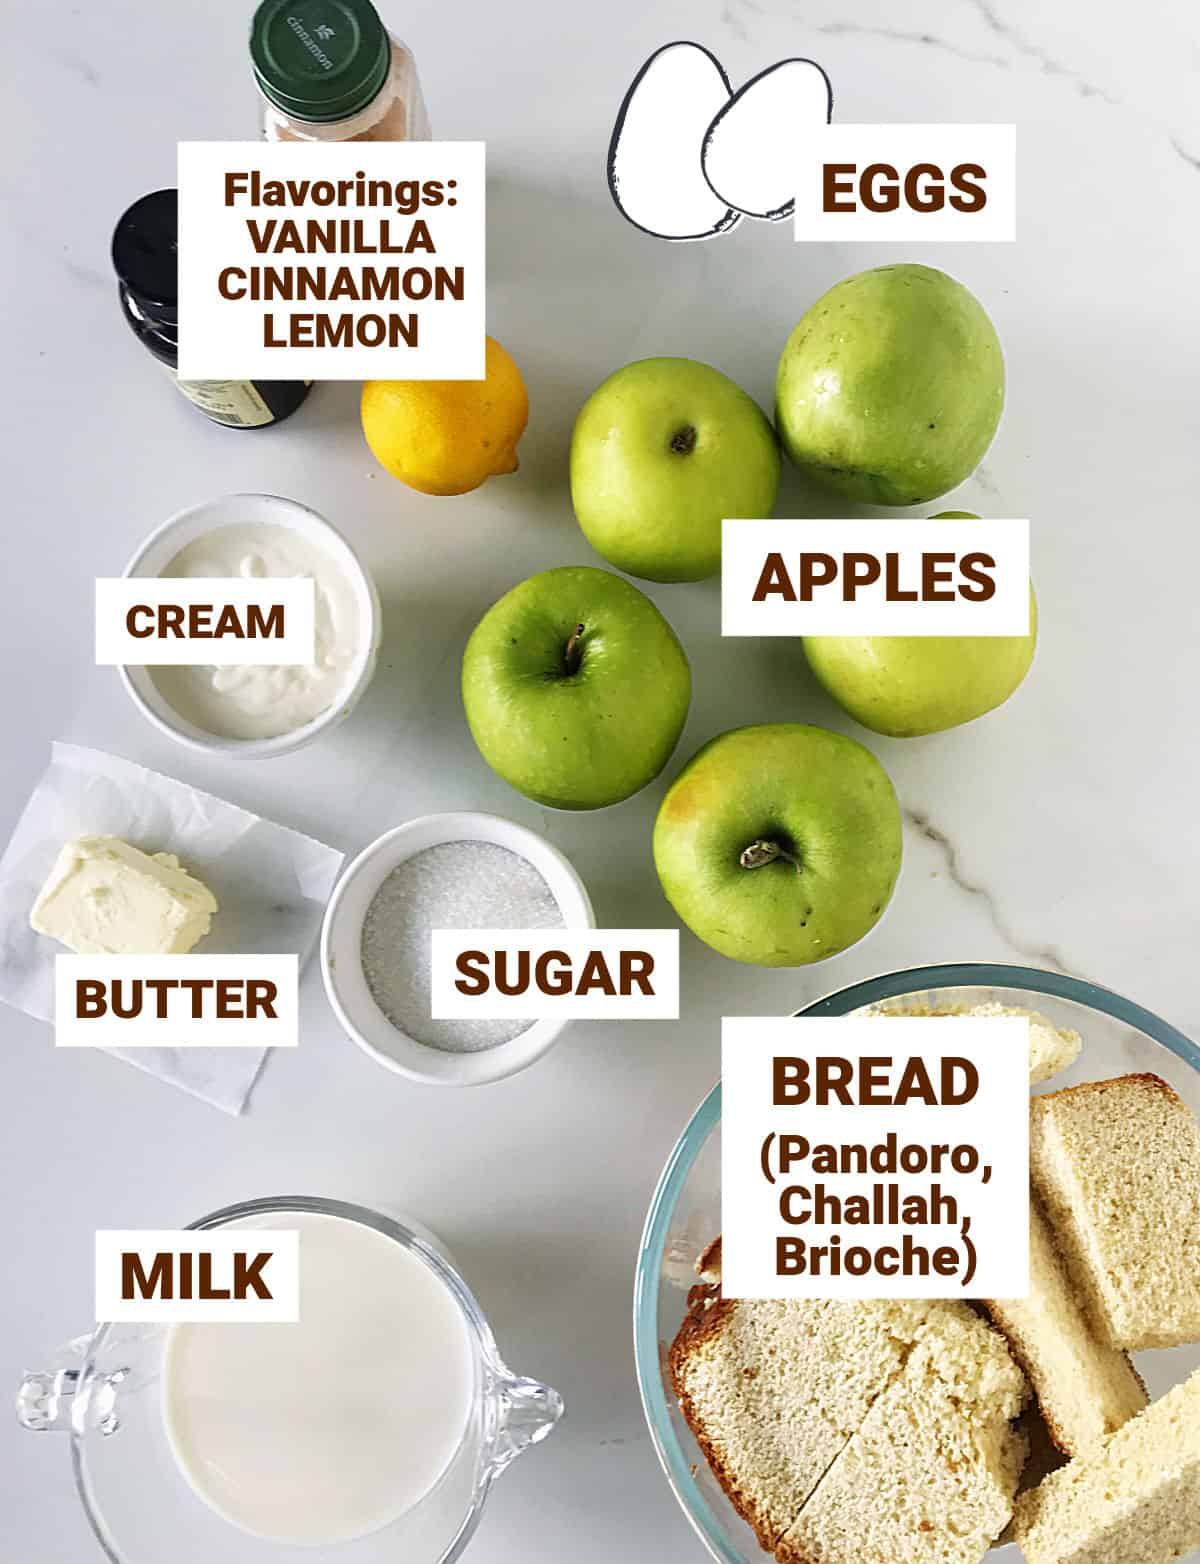 Ingredients for apple bread pudding in bowls and on white surface, including eggs and small bottles